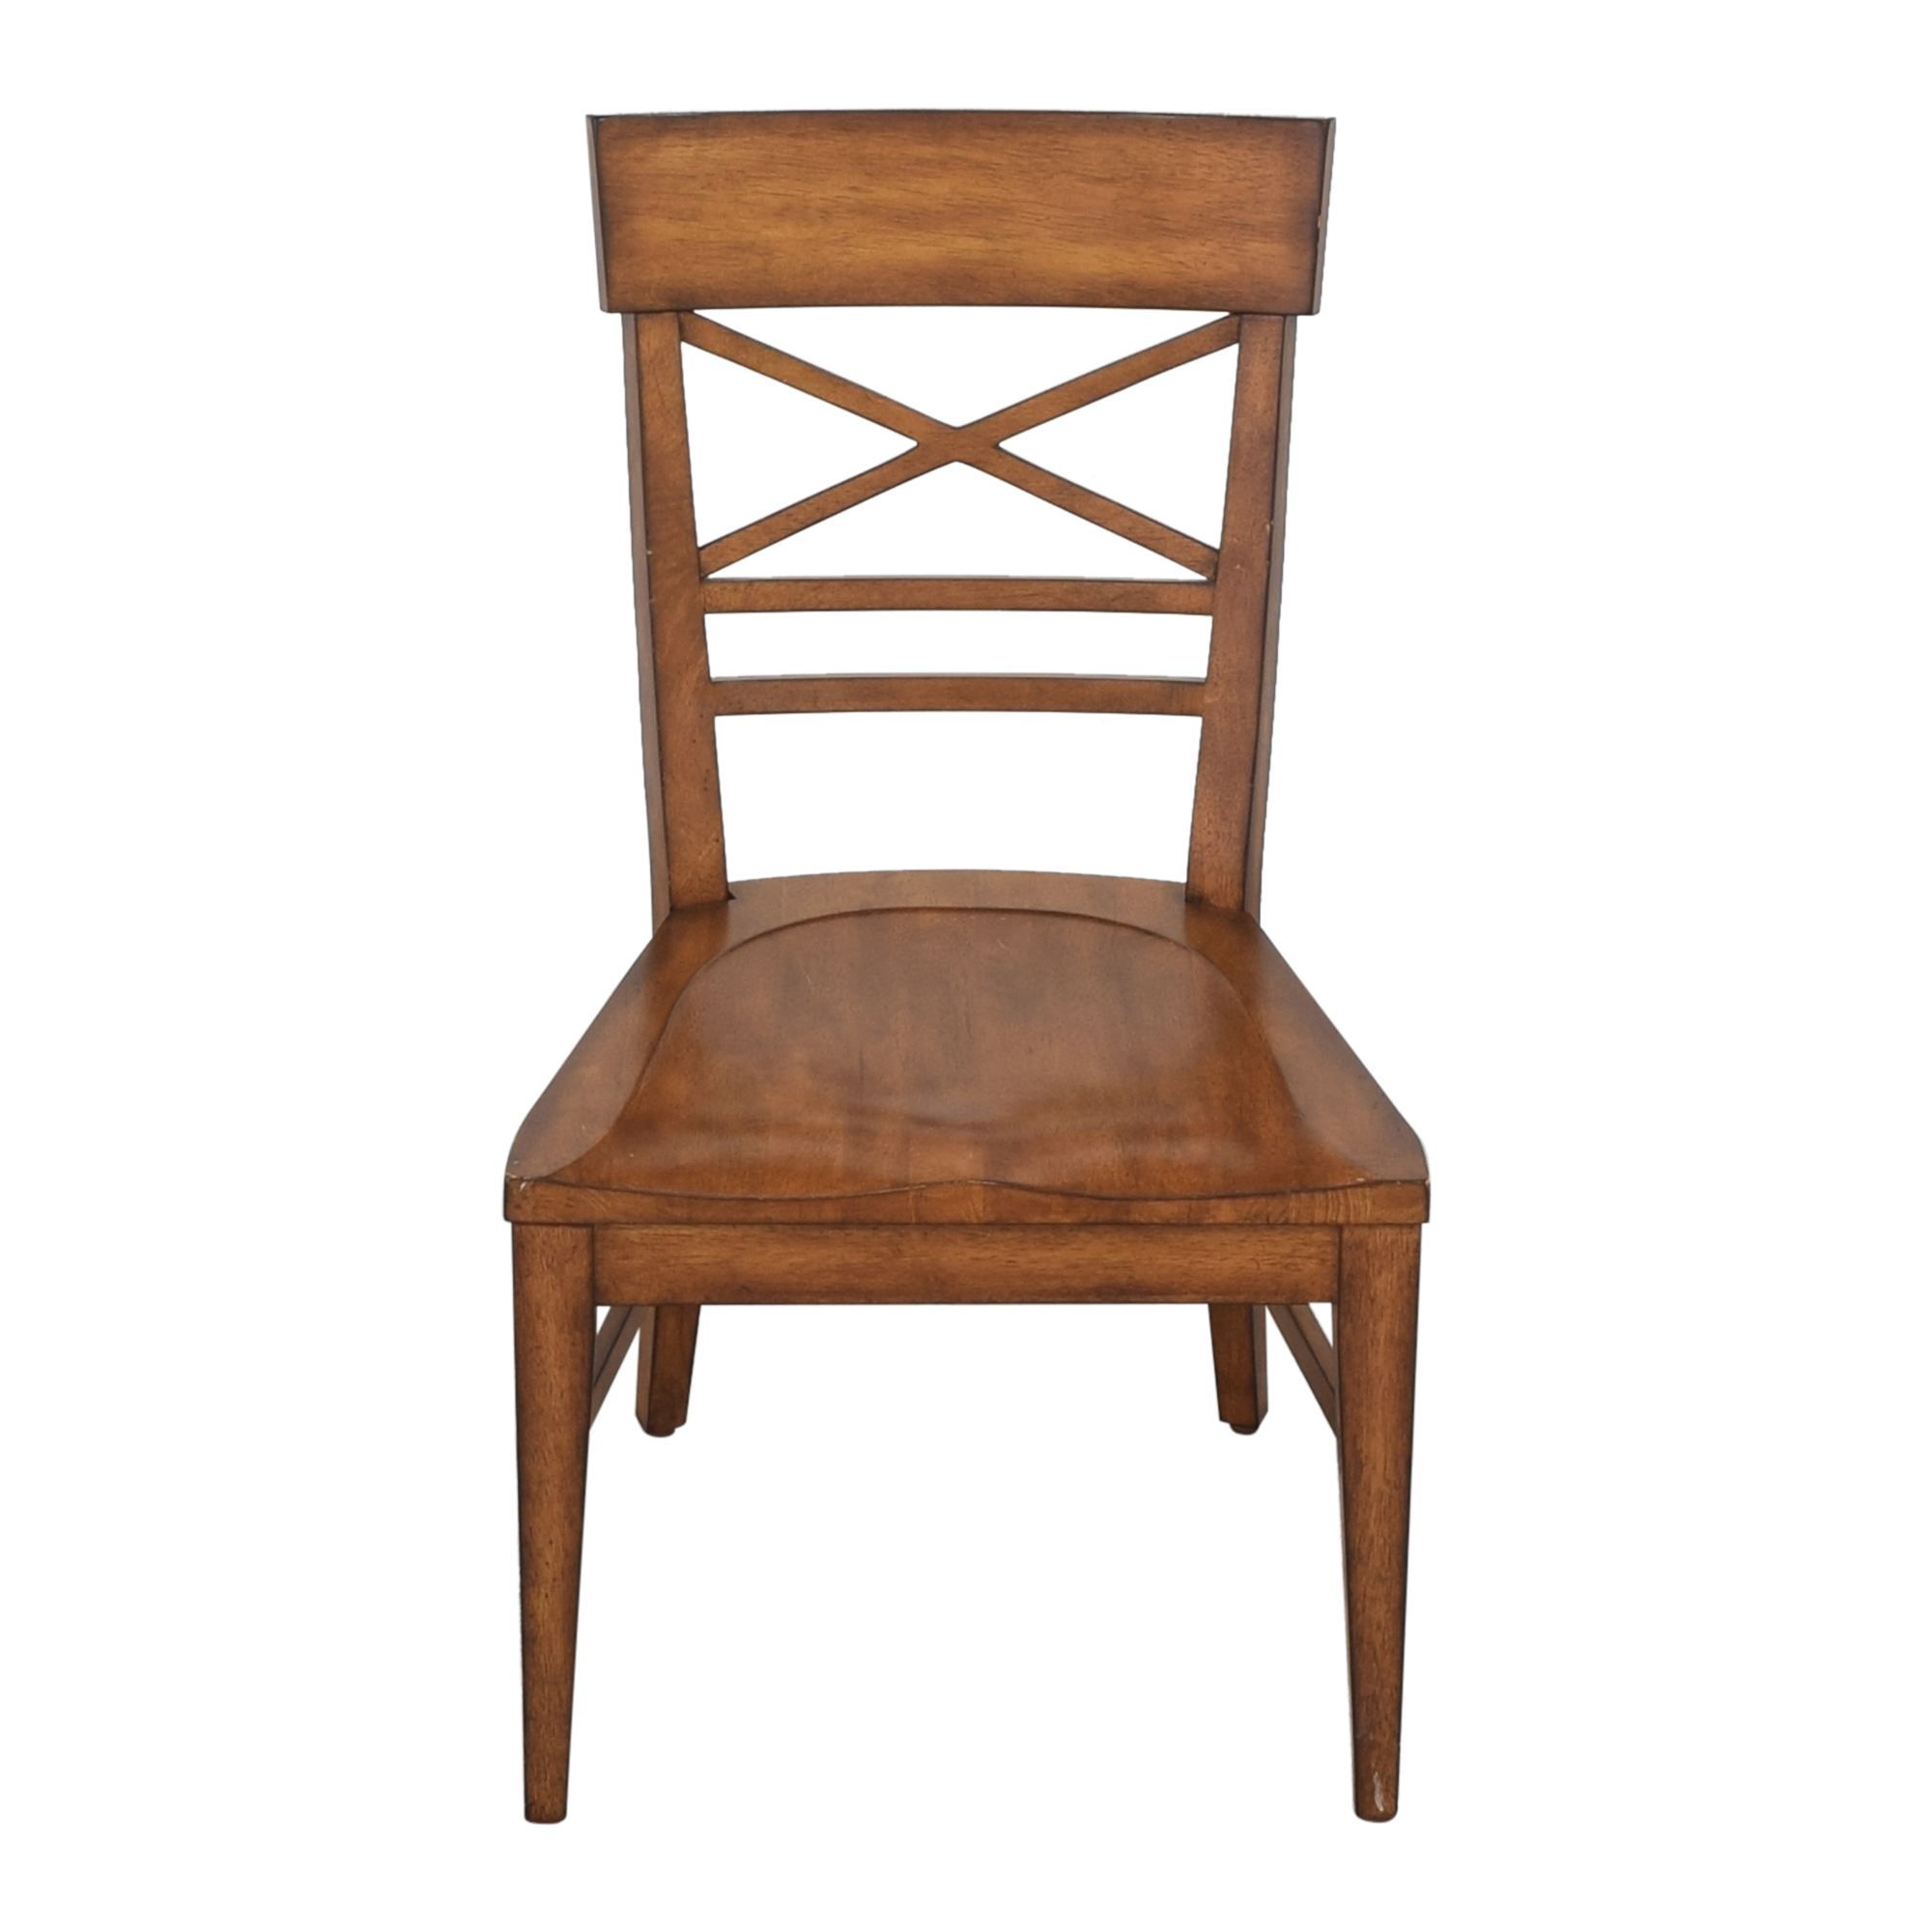 Ethan Allen Ethan Allen Blake Wood-Seat Side Chair Home Office Chairs